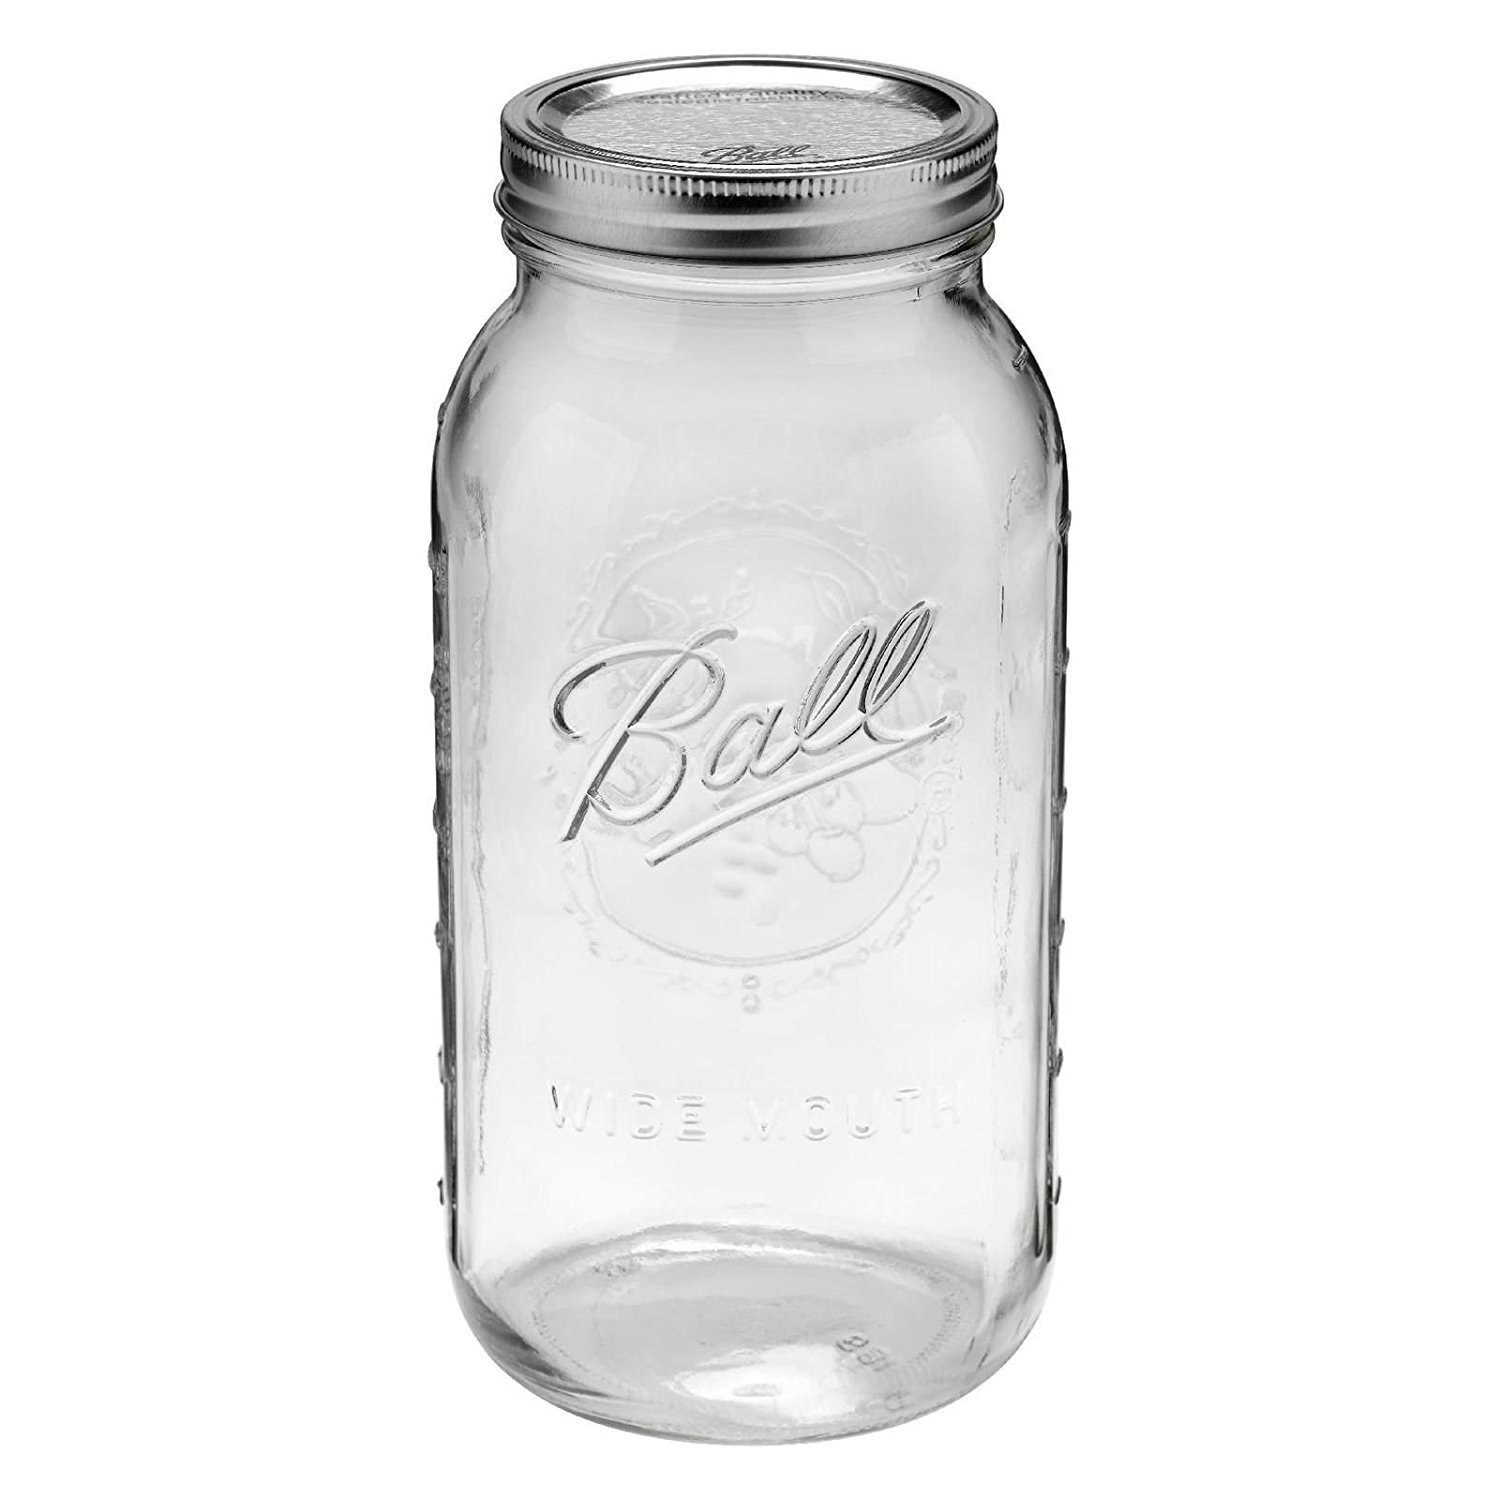 2 Liter Glass Mason Jar